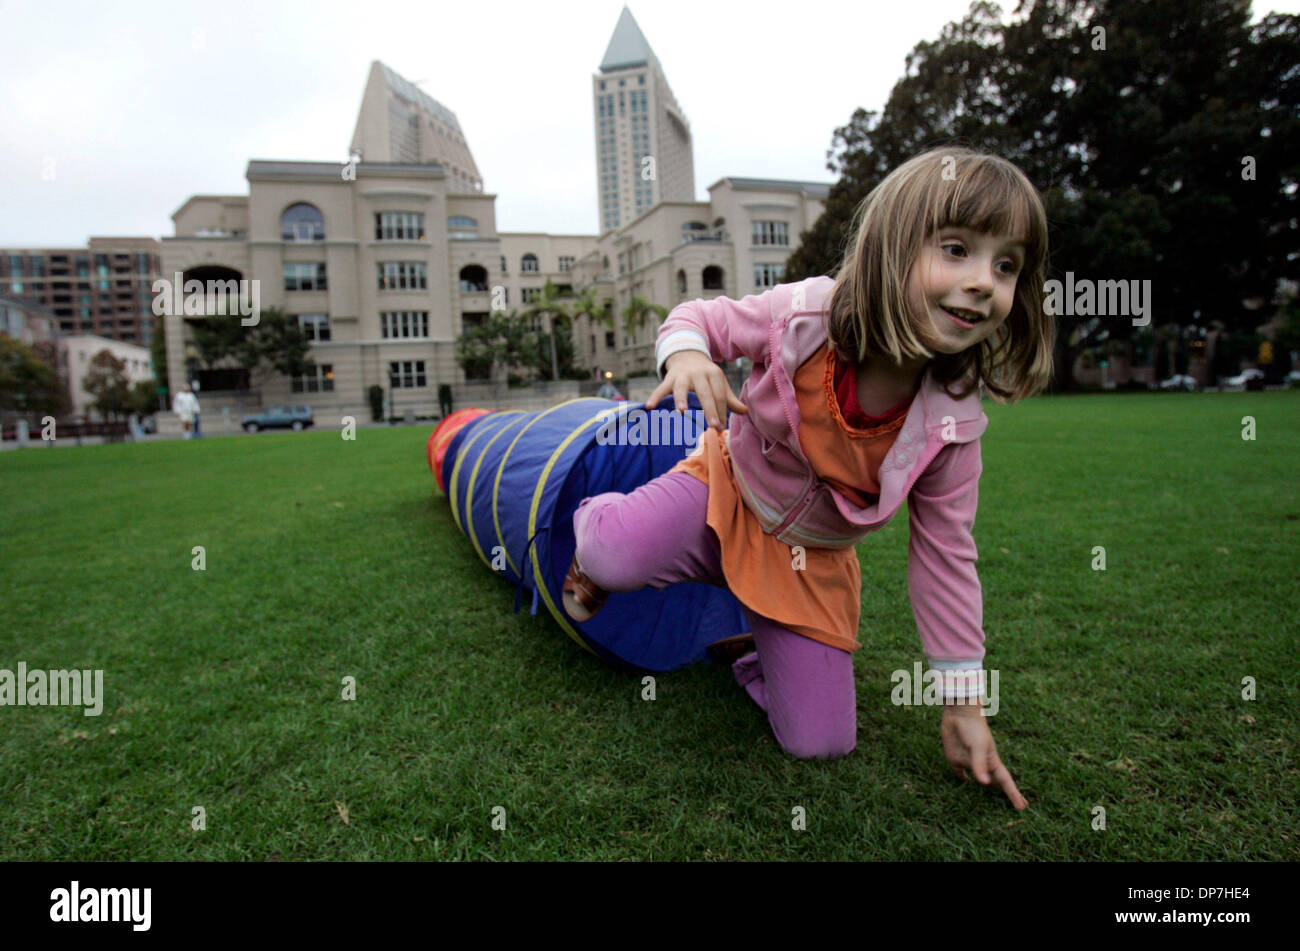 Nov 09, 2006; San Diego, CA, USA; MELODY RUTH, 6, exits a  collapsible tunnel as  board certified personal trainer Sean Mageau leads some downtown area children who meet for a play date in Pantajo Park (on G Street, near India St.) in exercises. The children's parents pay the trainer a nominal fee (he basically does it for free, having met the children as they played in the park wh - Stock Image